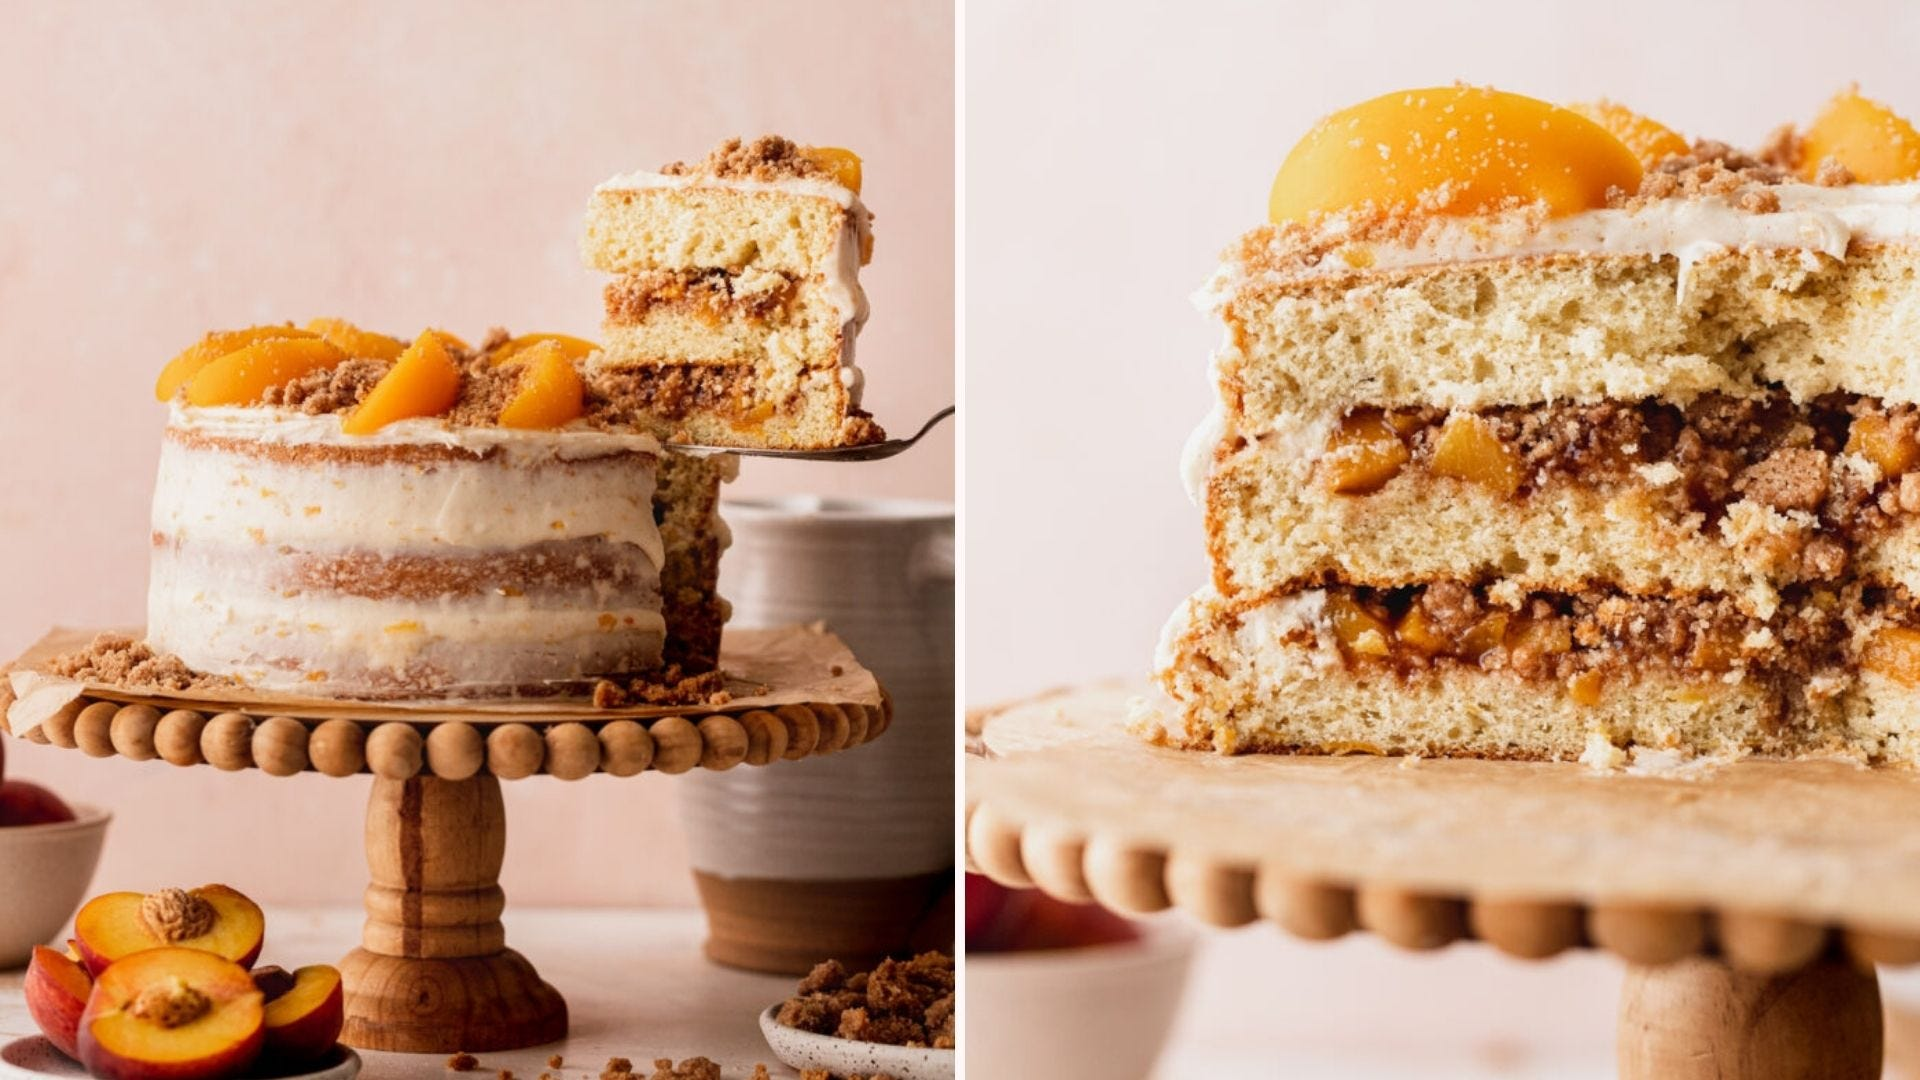 A peach layer cake on a wood cake stand; a view of the cake sliced open